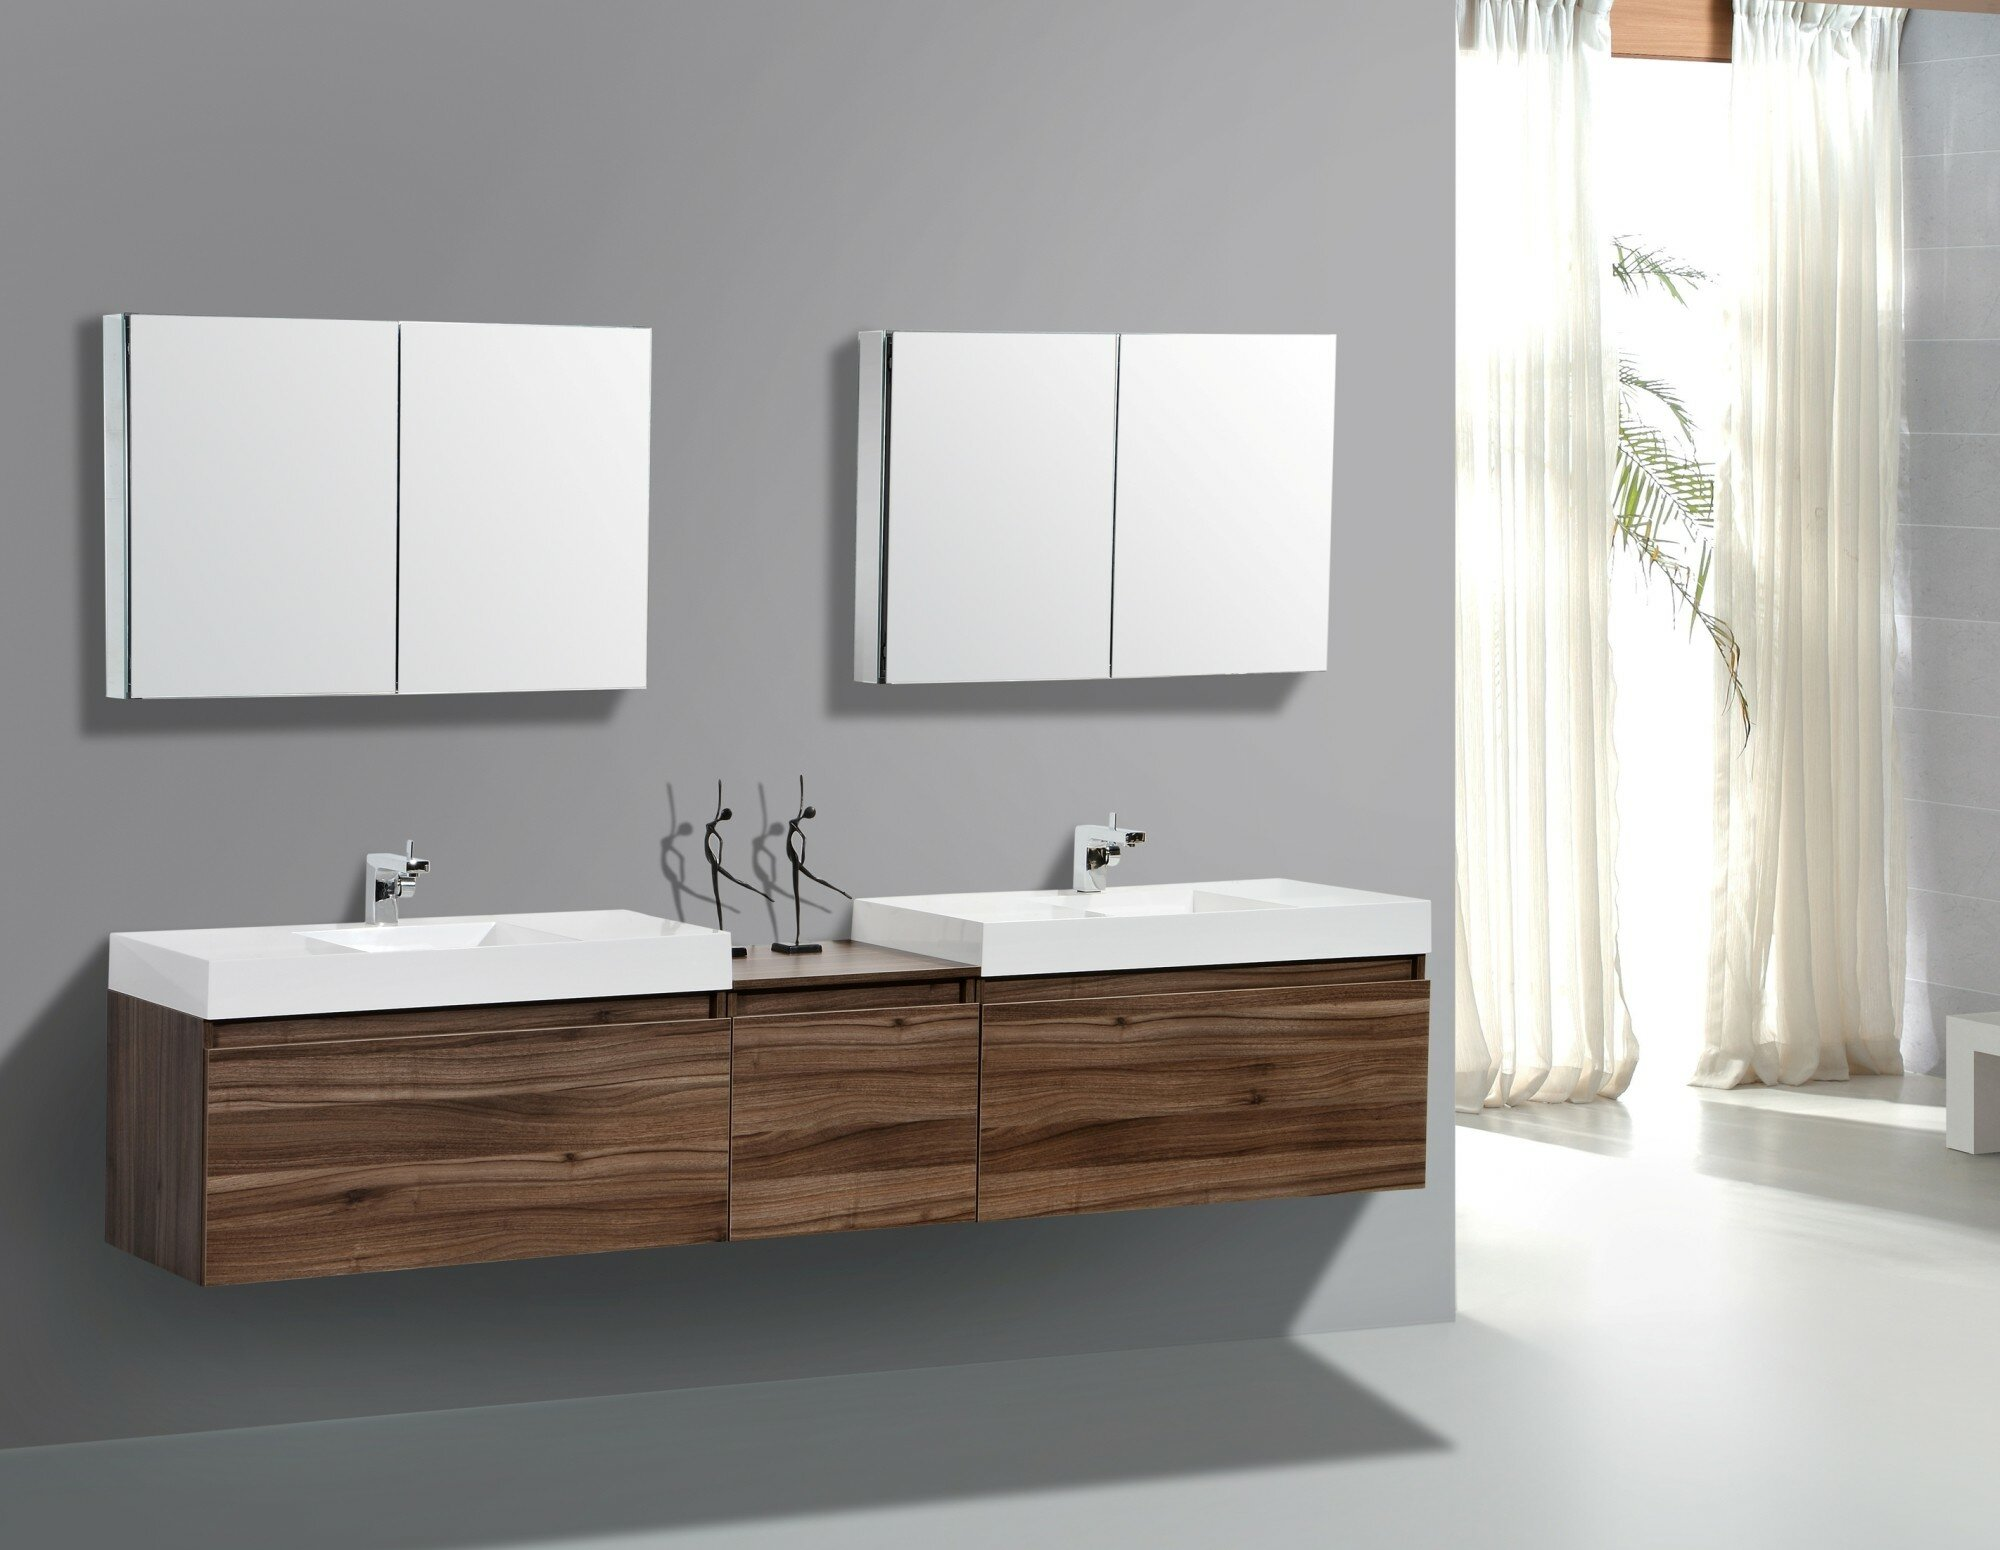 Bathroom Vanity Modern top 23 designs of modern bathroom vanities | mostbeautifulthings